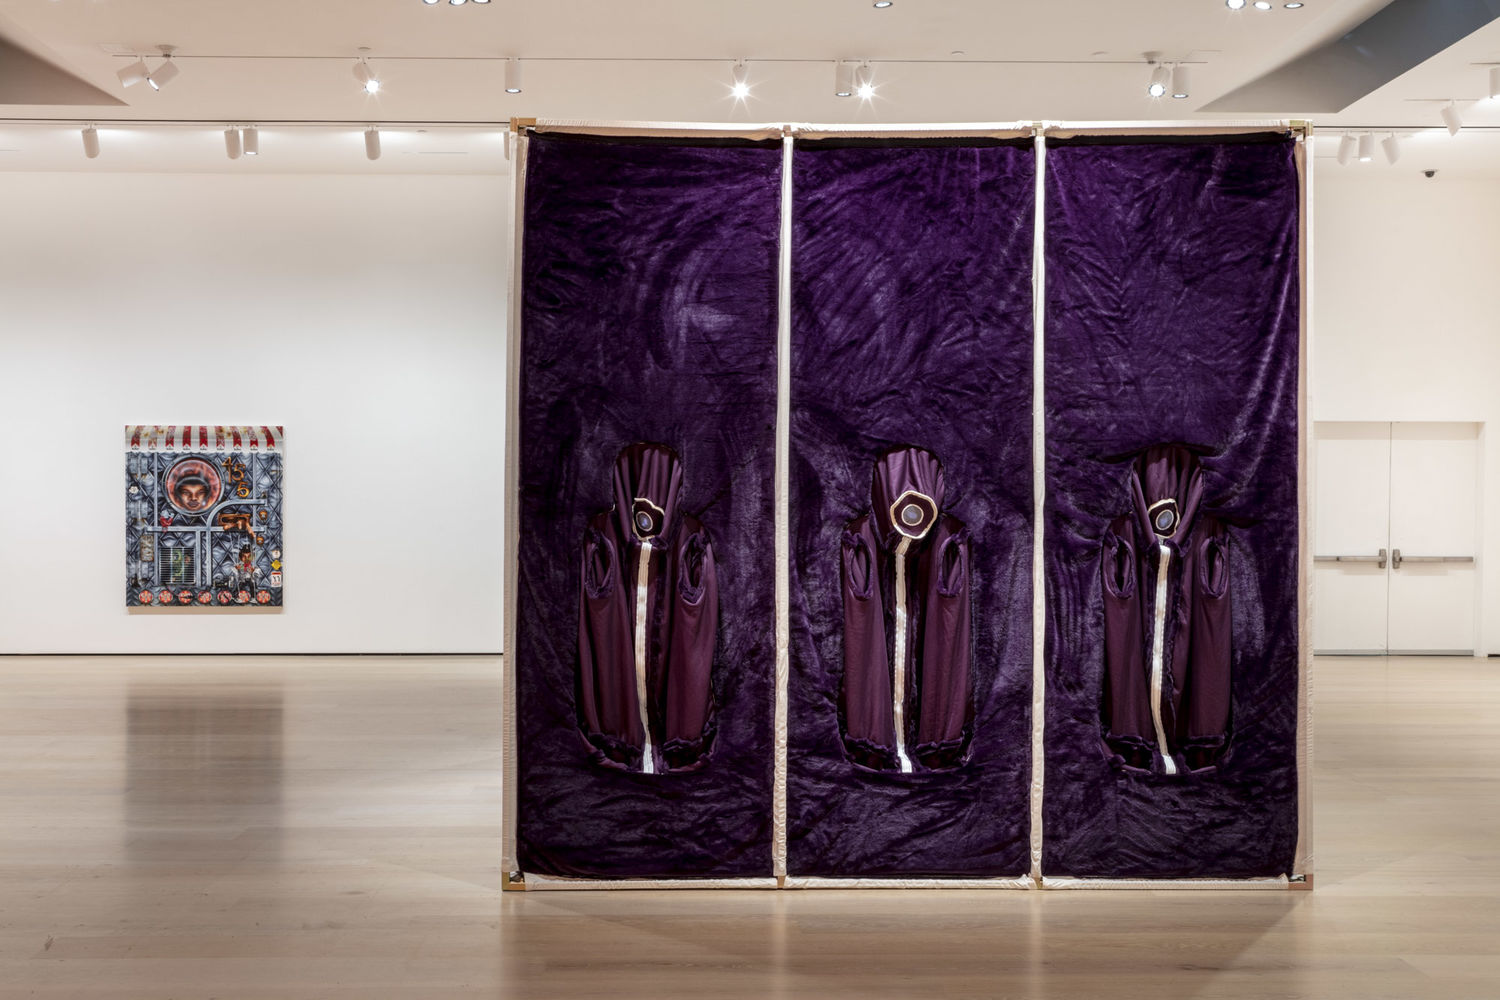 A large gallery with white walls with an artwork on the far wall and in the center of the room a large square structure of white poles and what purple fabric covering the surface. Three panels each have a white circle at head height, with a white stripe down to the floor.